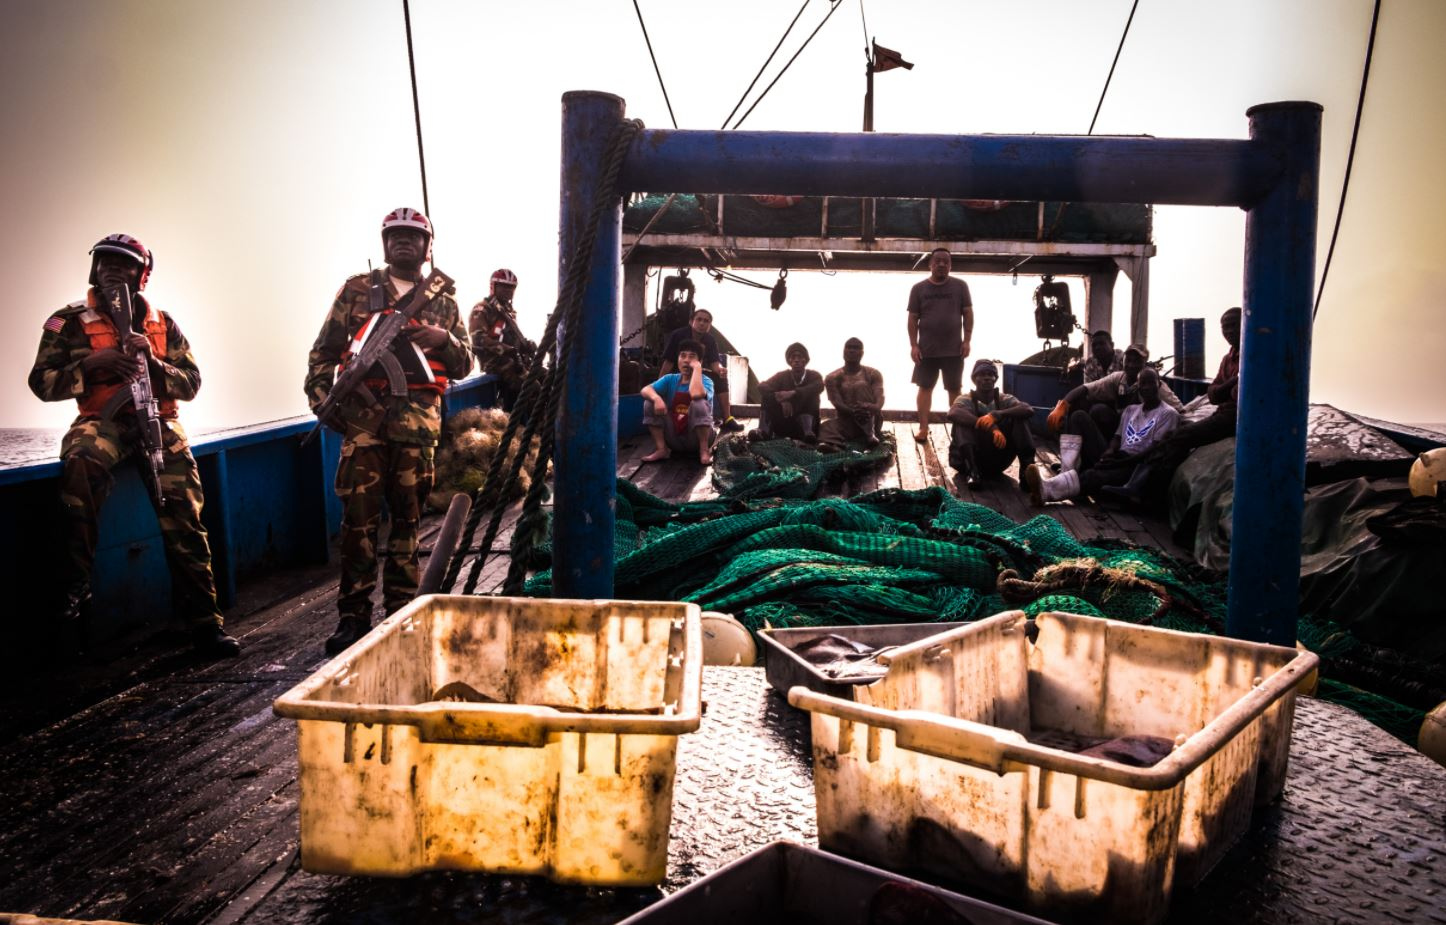 Chinese-Flagged Illegal Fishing Vessel Arrested by Liberian Coast Guard and Sea Shepherd